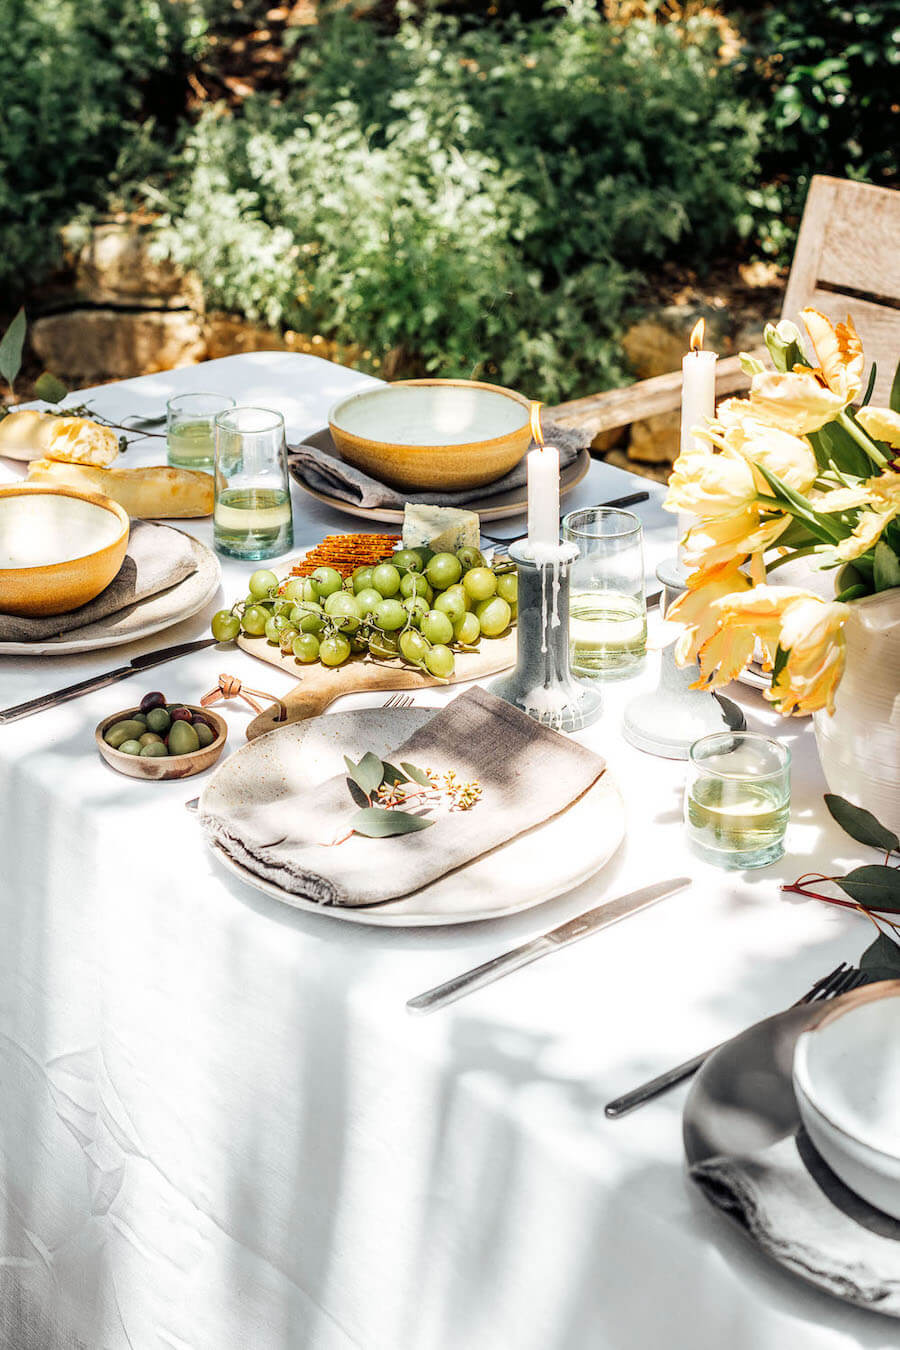 Throw an Amazing Outdoor Summer Party